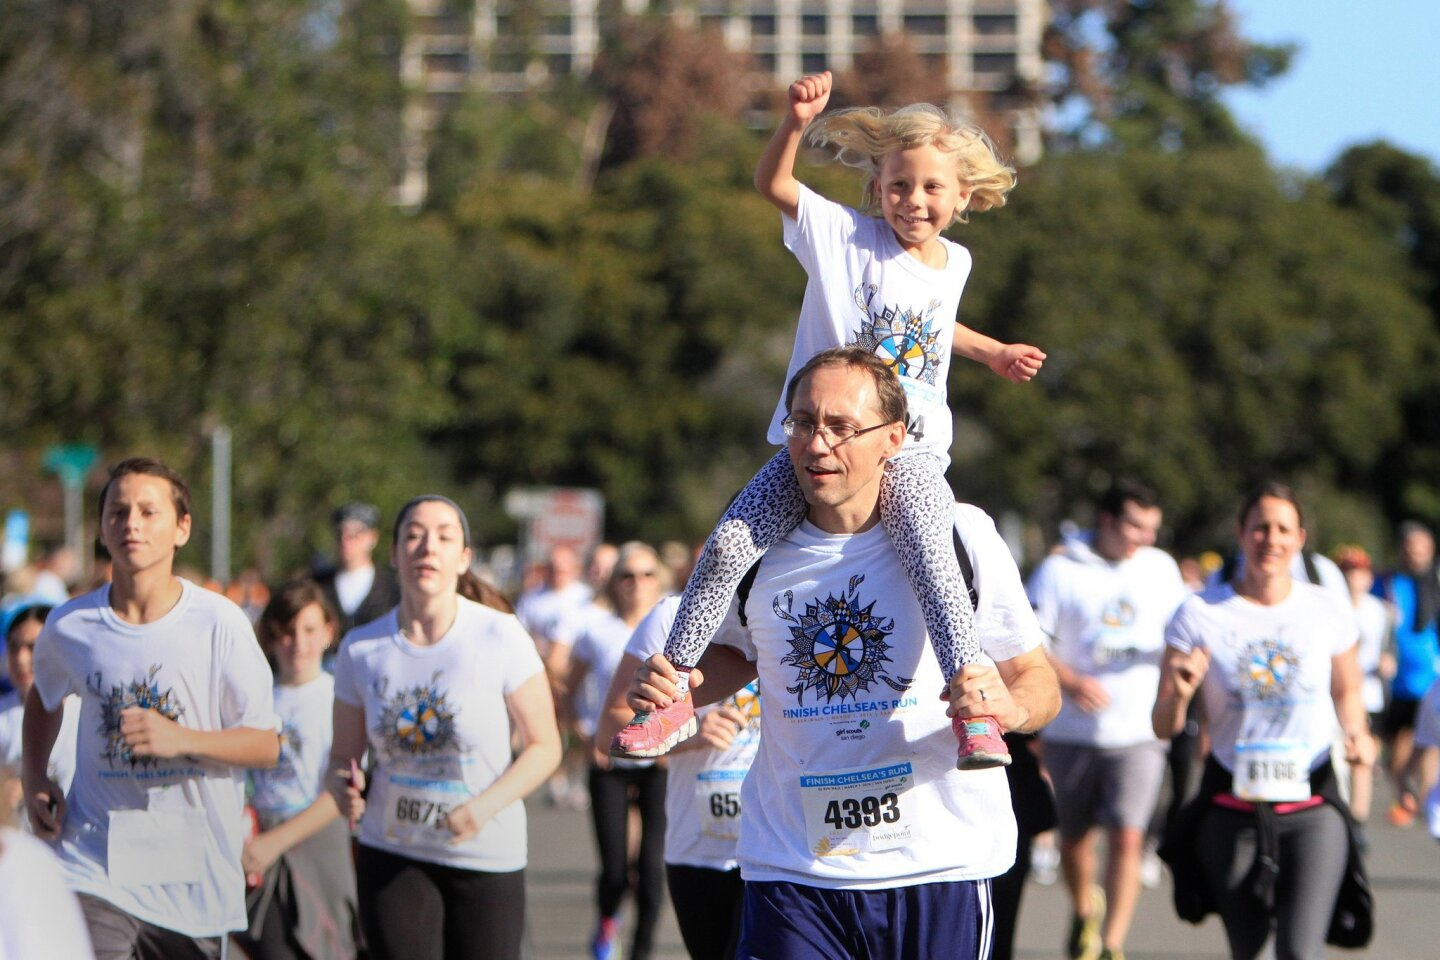 John Sedy and his daughter Karolina Sedy, 6, of University City participate in the fifth annual Finish Chelsea's Run charity fundraiser at Balboa Park Saturday.